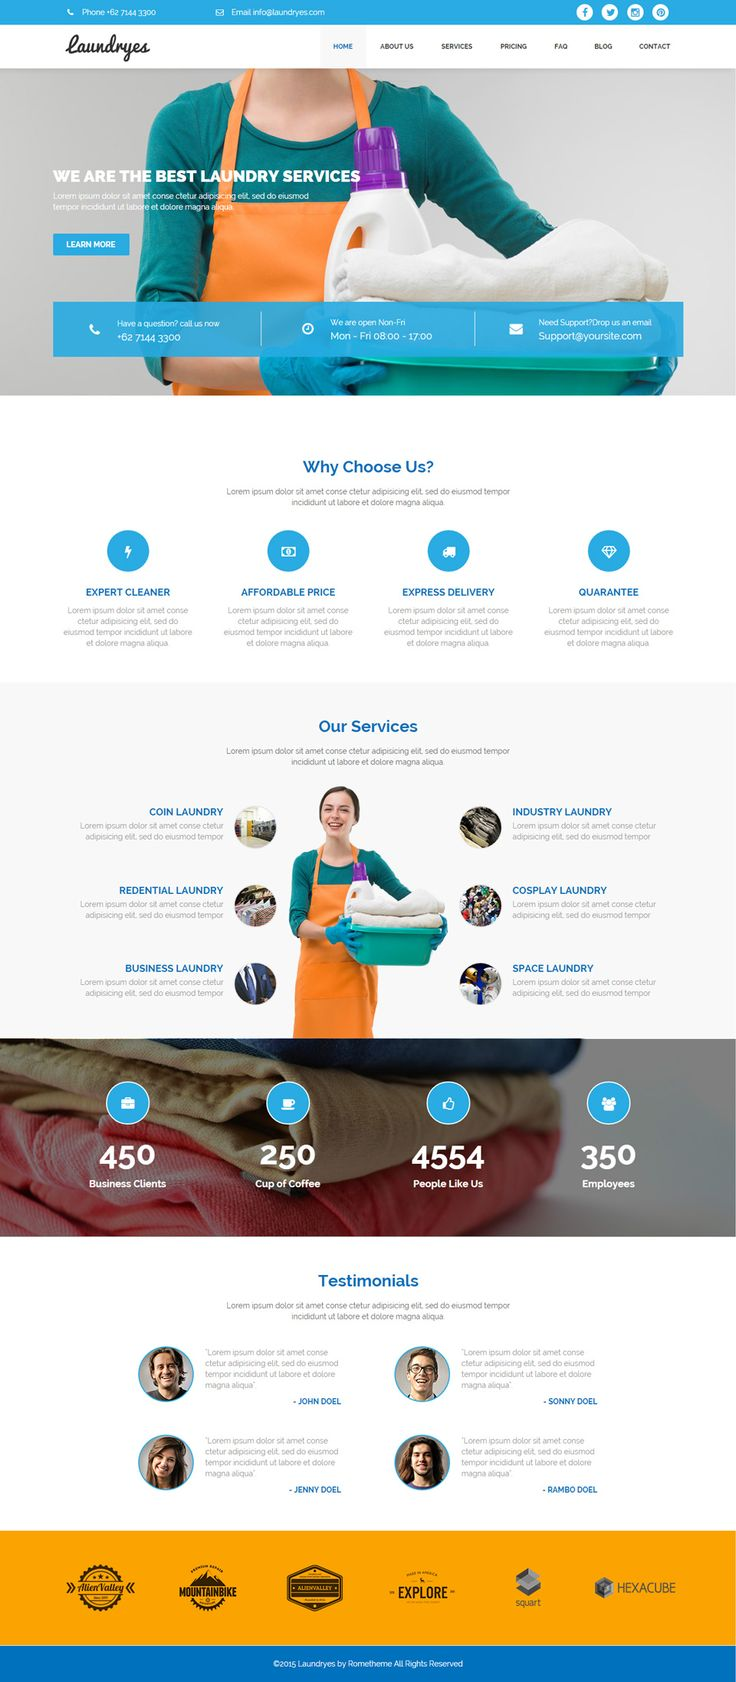 Laundryes - Laundry Business Adobe Muse Template available at #themeforest #envato by rometheme.net